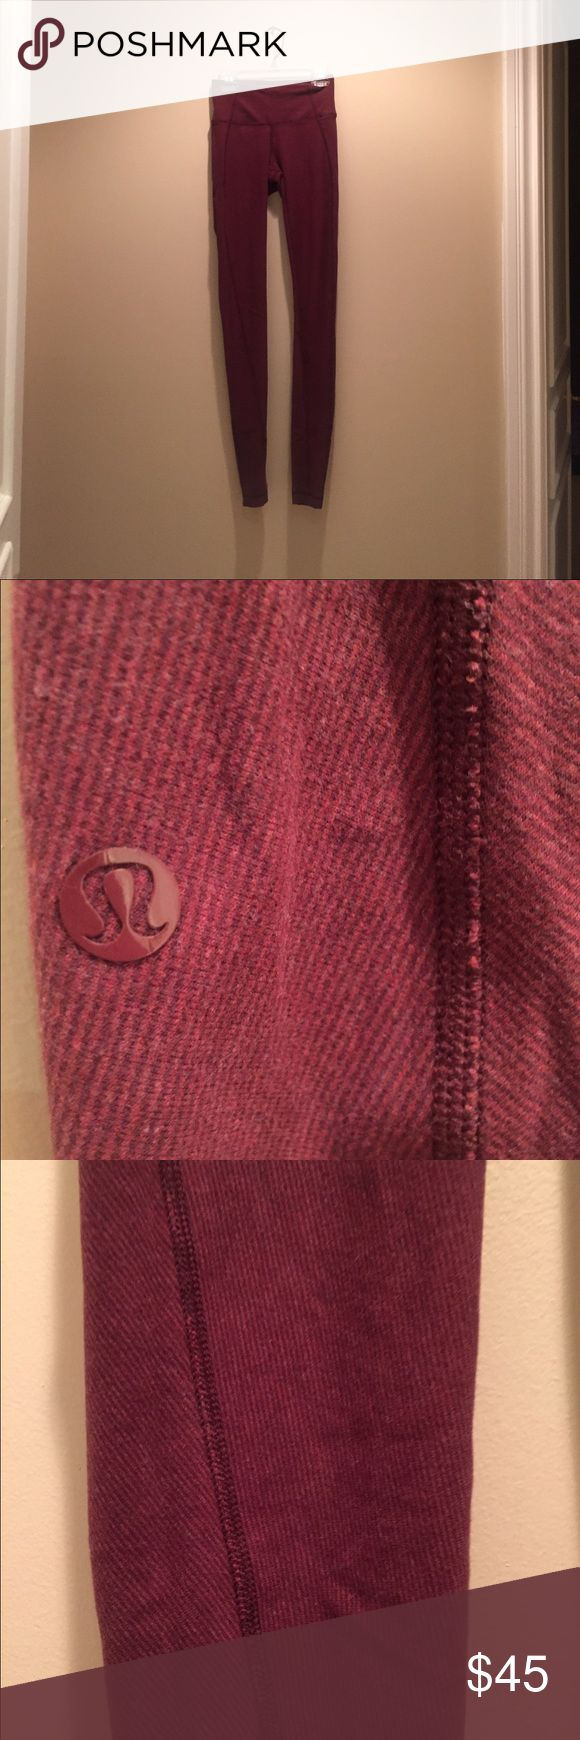 Burgandy Lulu Lemon Leggings Comfortable cotton lulu lemon leggings. Very comfortable. Limited addition. They don't manufacture these anymore. lululemon athletica Pants Leggings